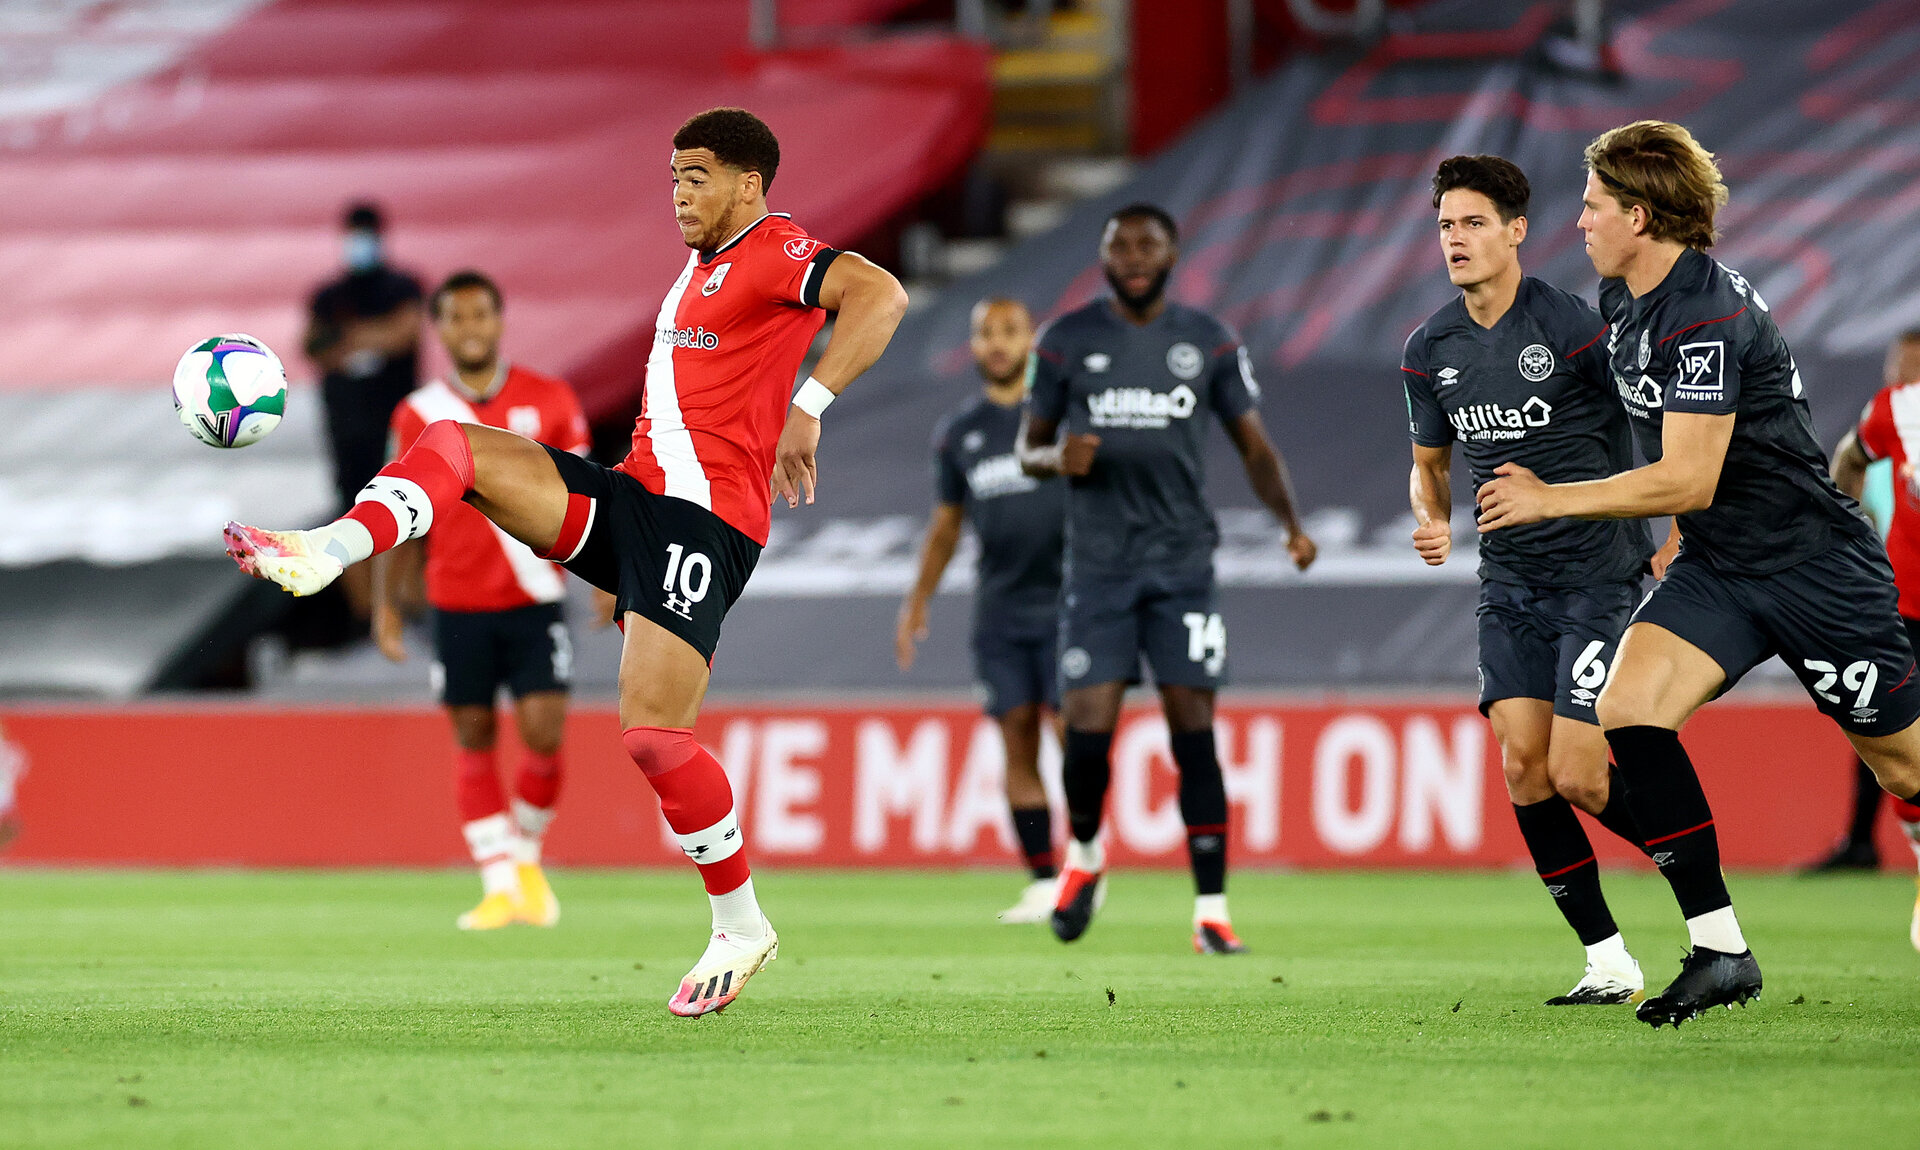 SOUTHAMPTON, ENGLAND - SEPTEMBER 16: Ché Adams of Southampton during the Carabao Cup 2nd round match between Southampton FC and Brentford FC, at St. Mary's Stadium on September 16, 2020 in Southampton, England. (Photo by Matt Watson/Southampton FC via Getty Images)